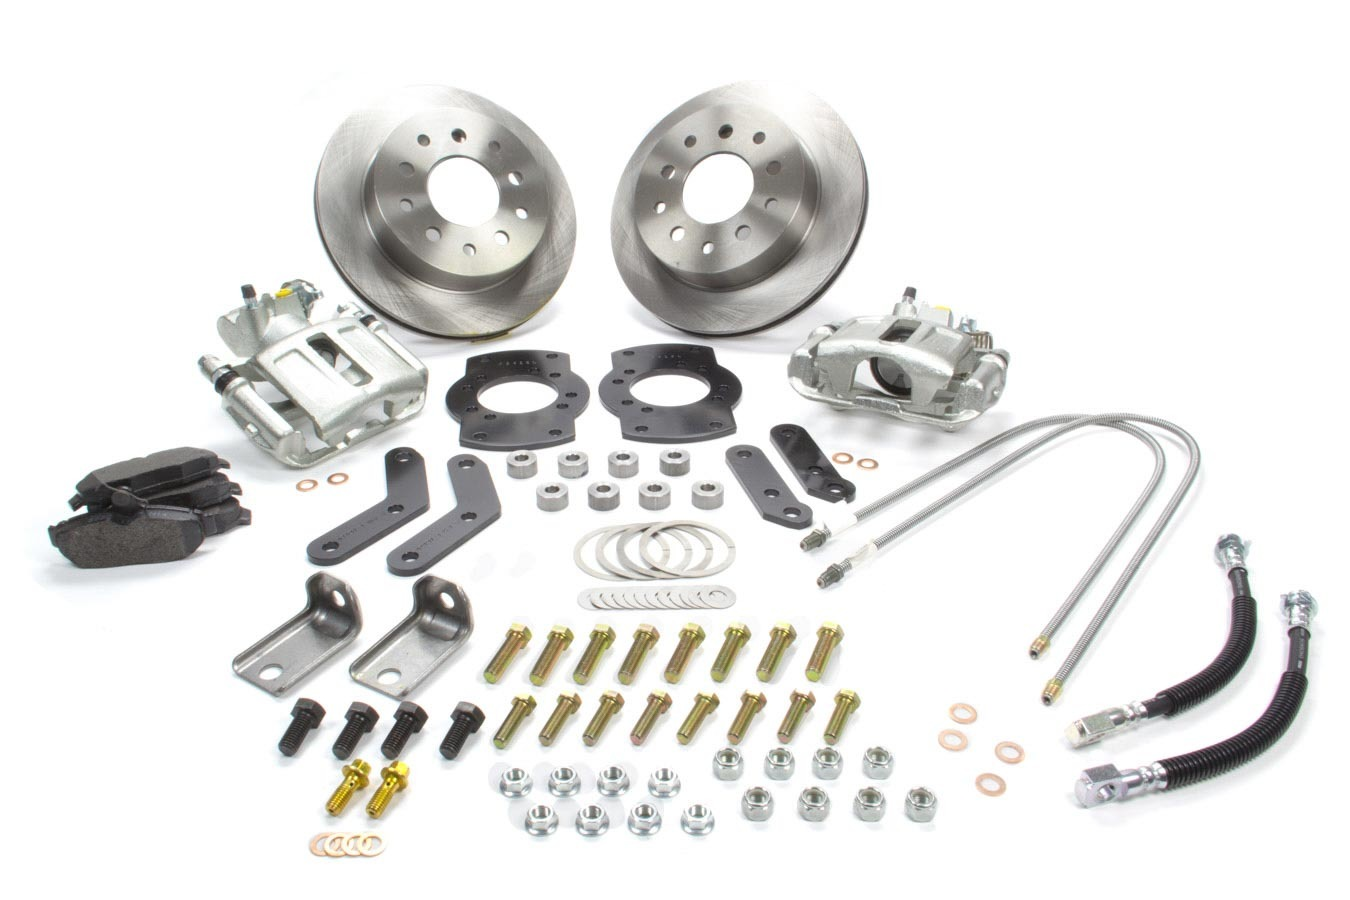 Rear Disc Brake Conv Kit 62-67 Nova/67 Camaro